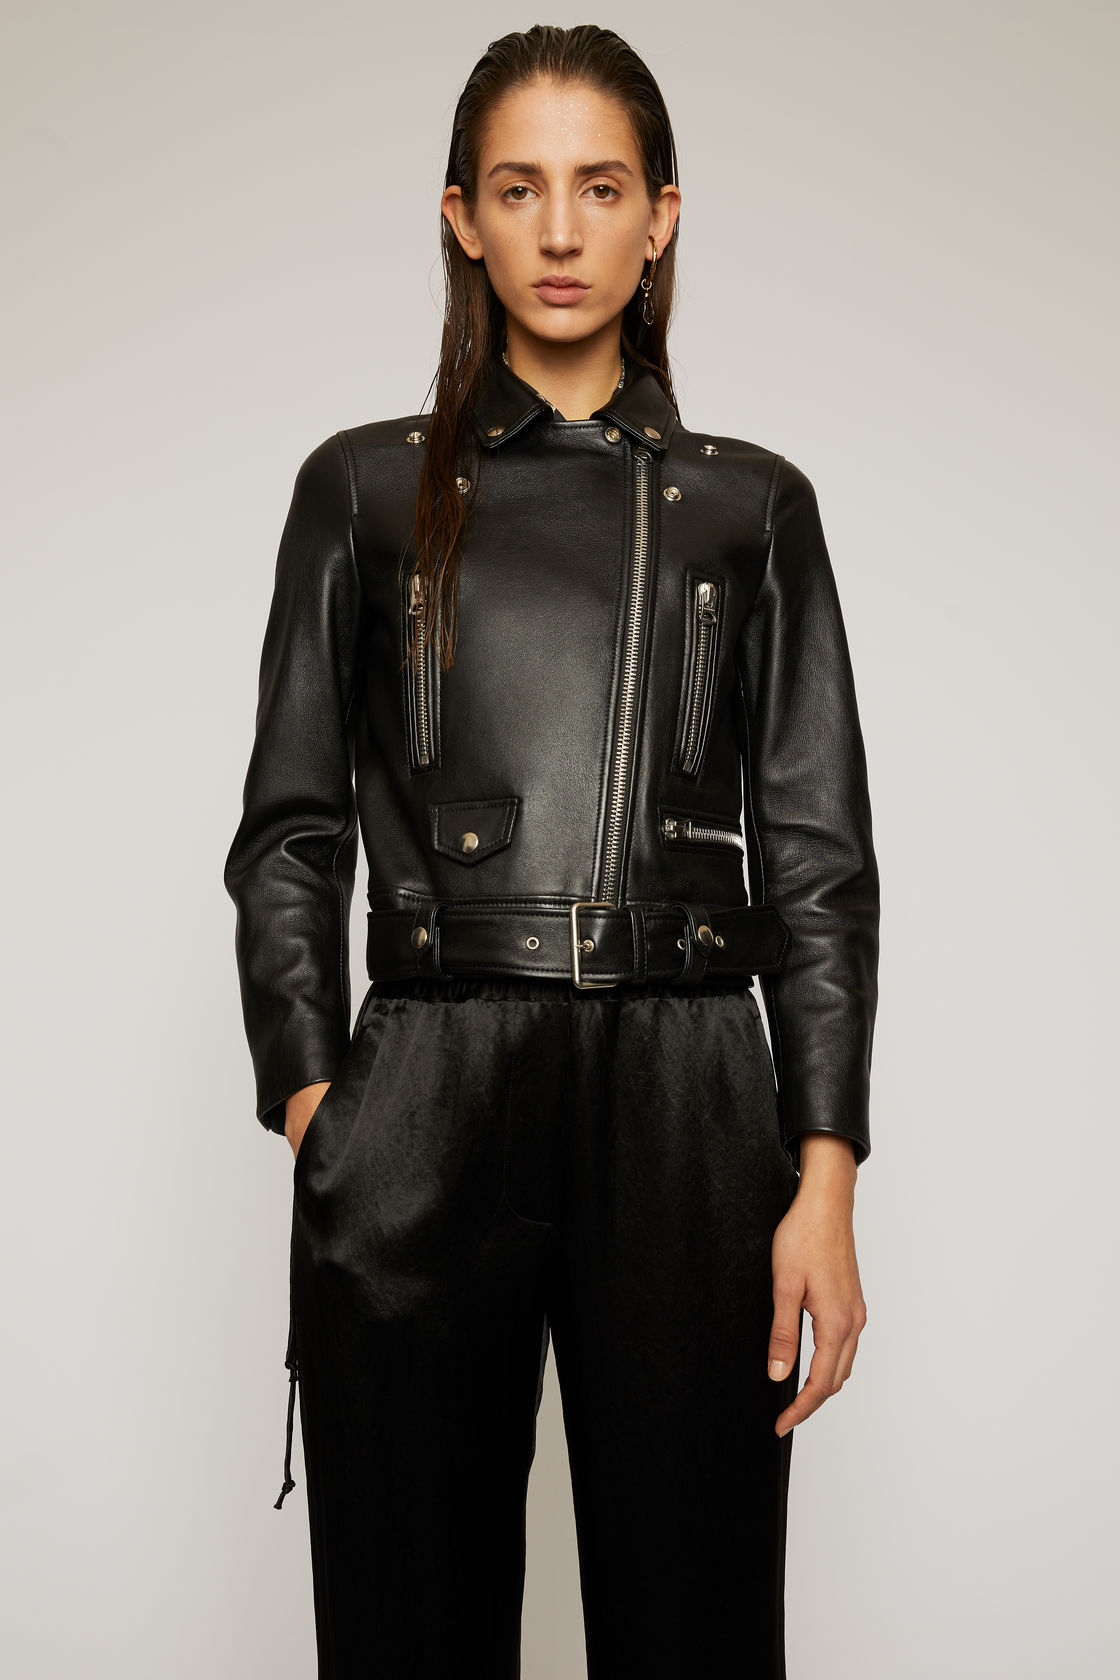 The cropped black leather jacket for women The leather biker jacket is a French staple: timeless and effortless chic! Selection of the best premium leather jackets Anine Bing Benjamin